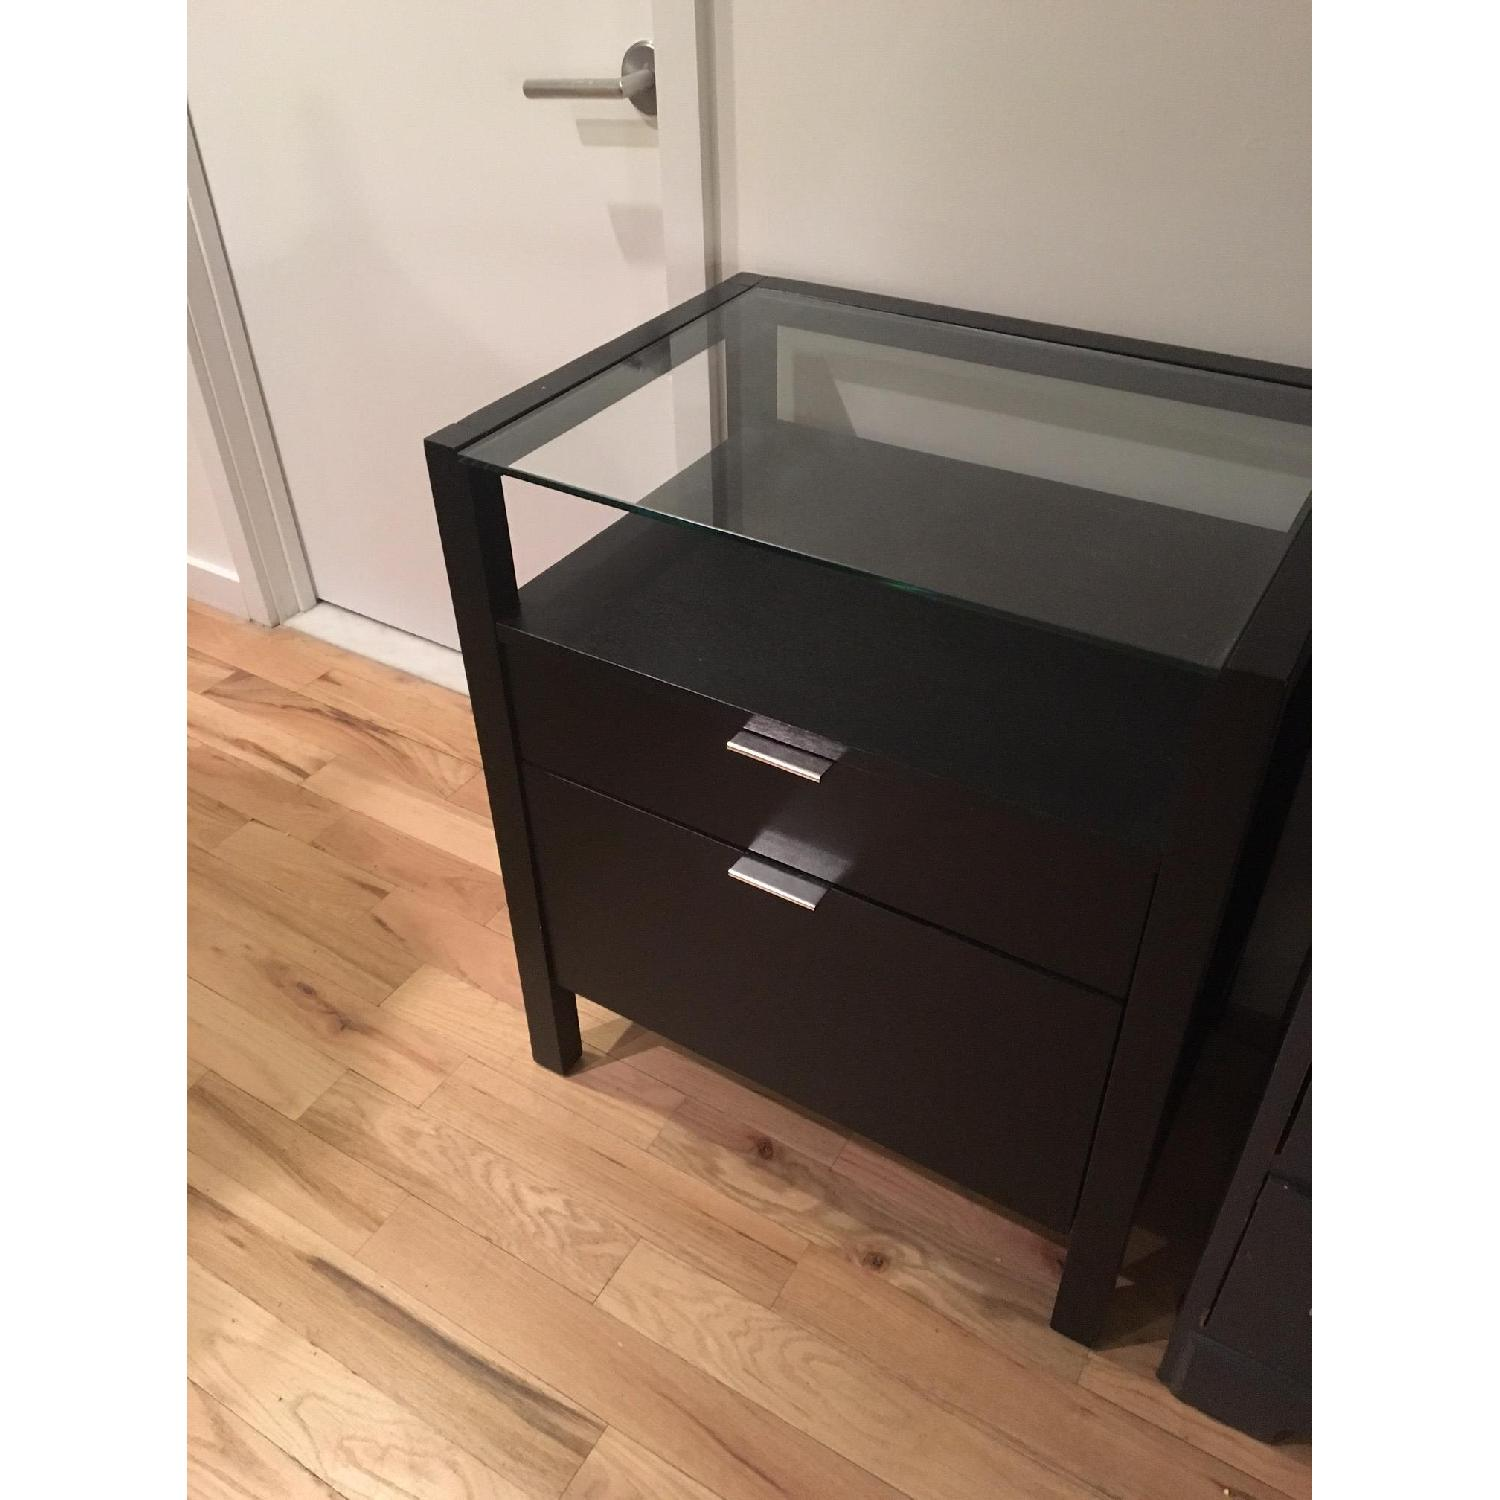 Crate & Barrel Side Table with File Drawers - image-2